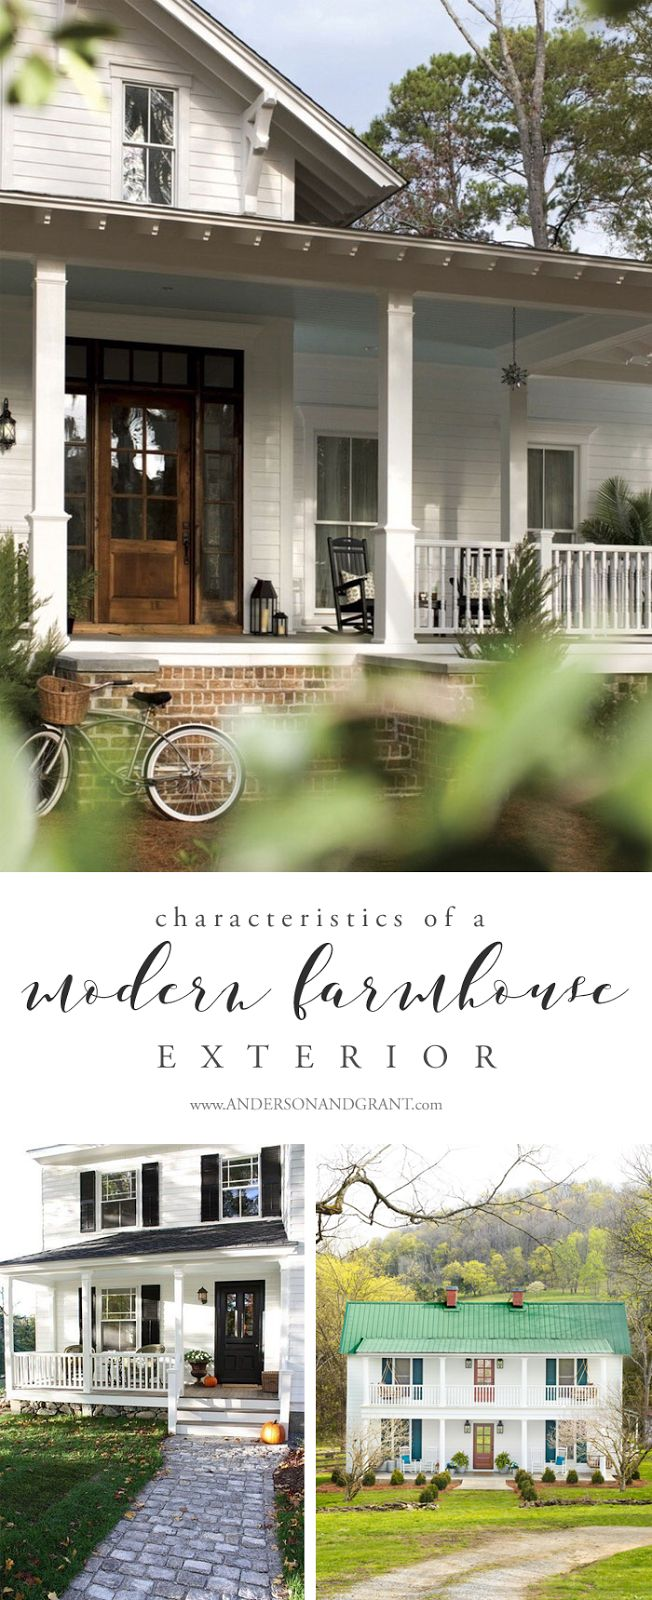 Characteristics of a modern farmhouse exterior modern for Farmhouse interior design characteristics